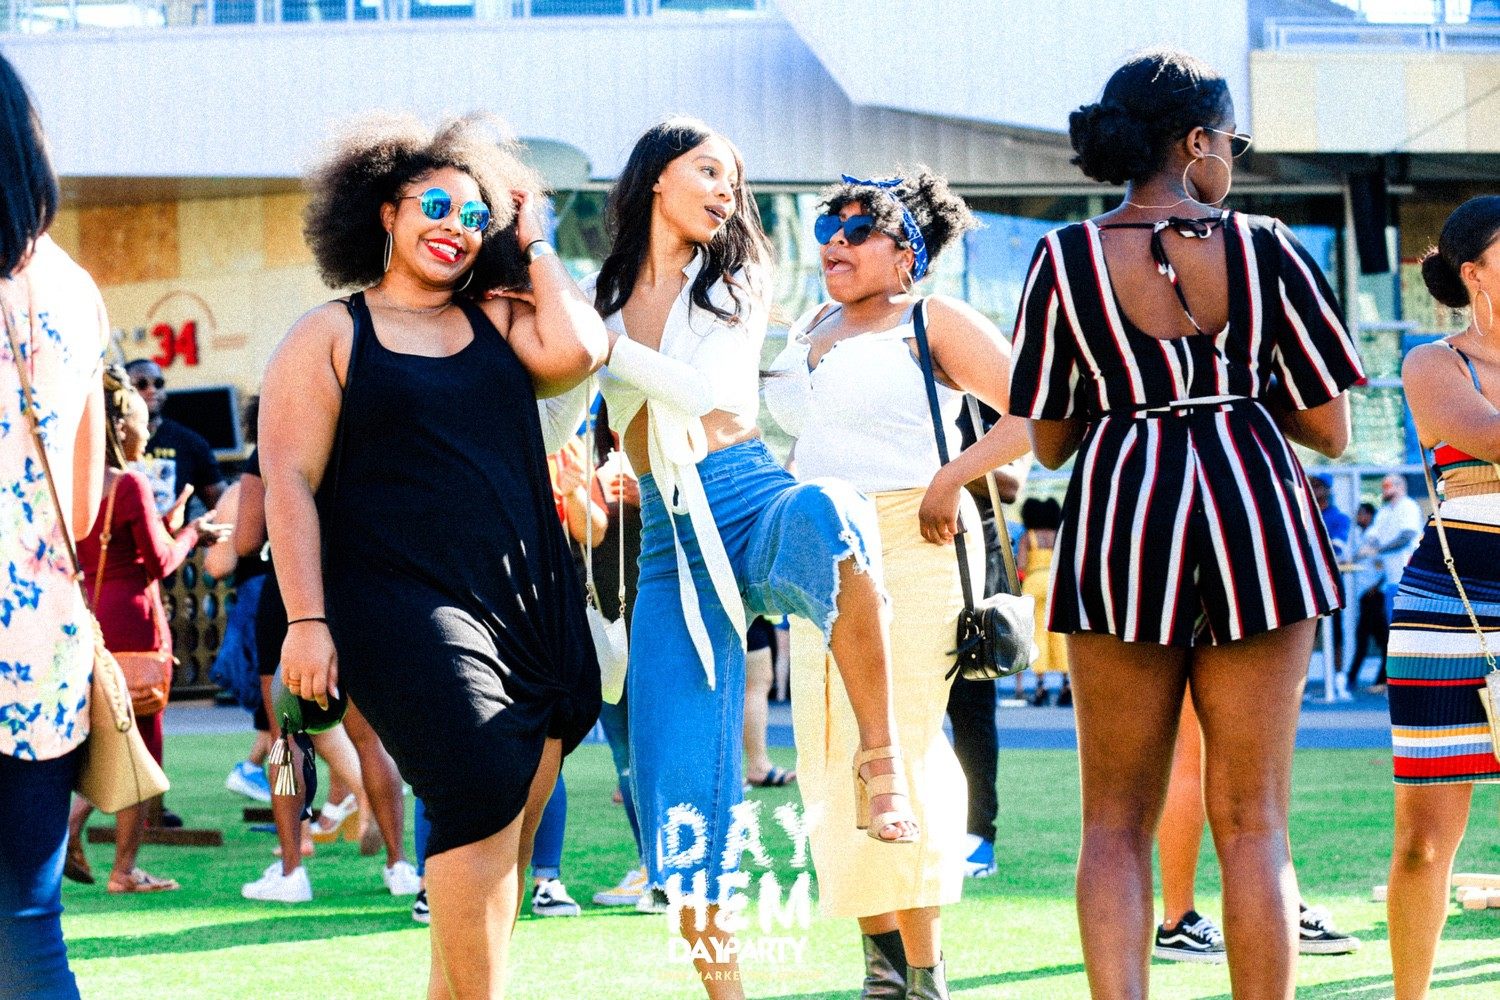 {PICS} 08.18.19 – Dayhem Day Party @ Target Field {Part 2}